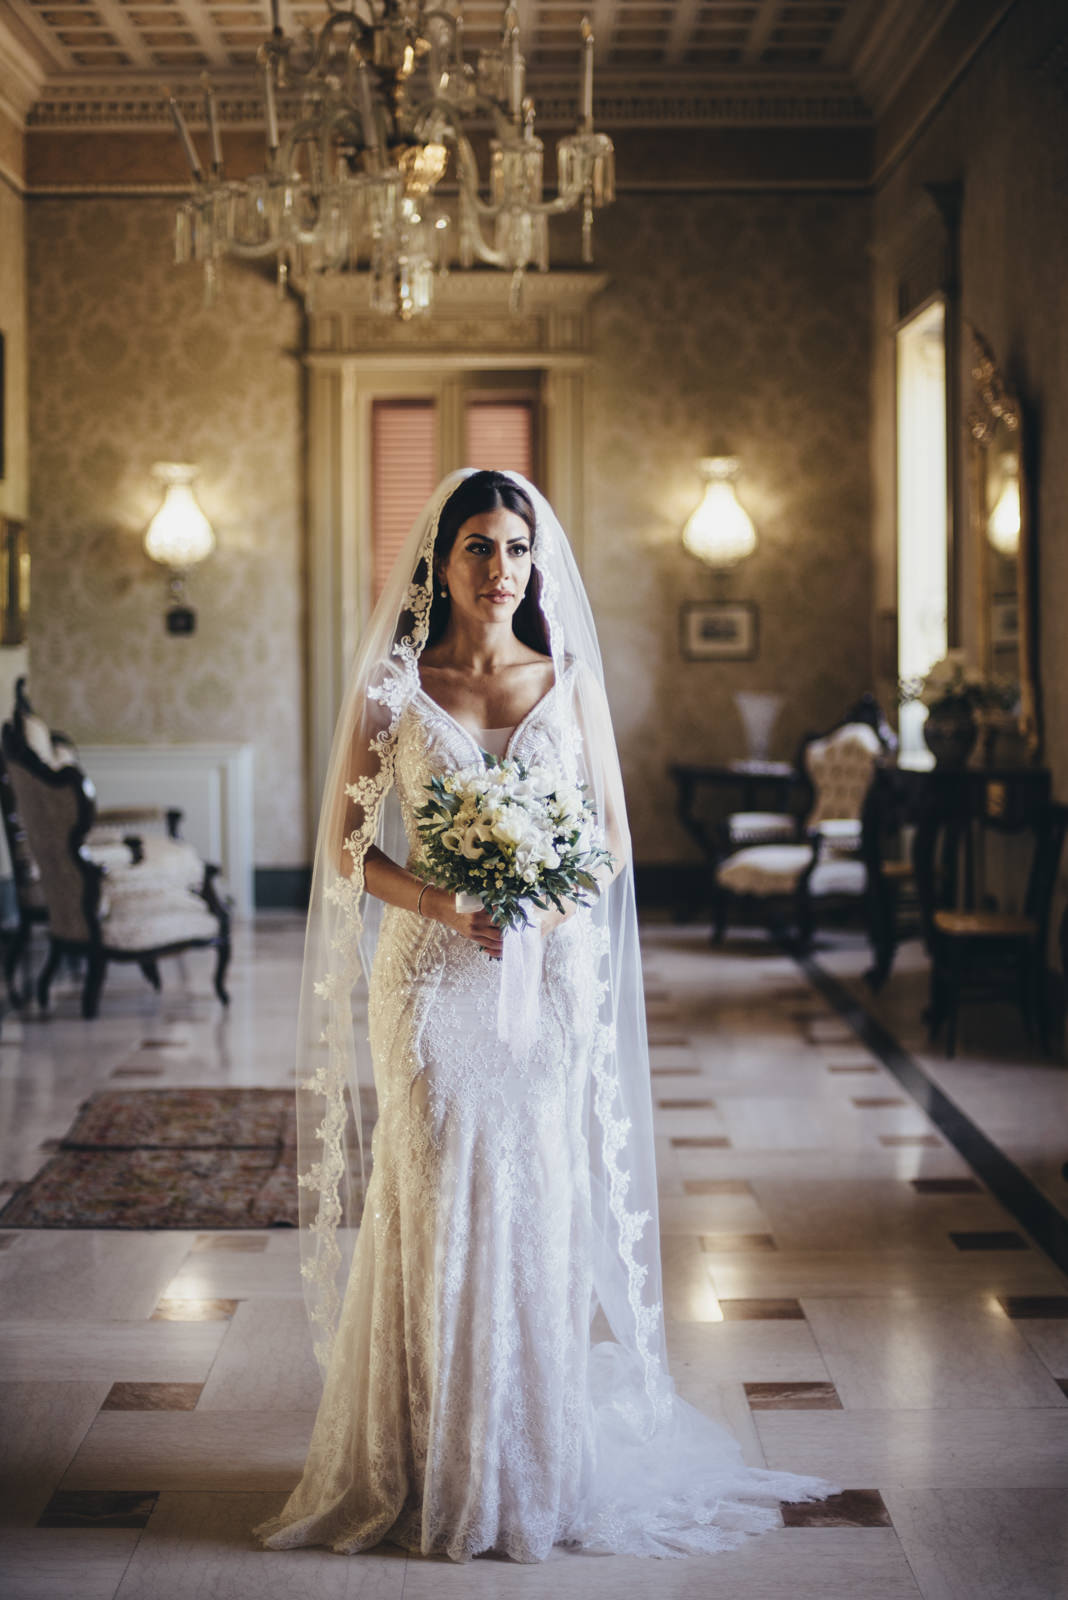 the bride standing with her bouquet